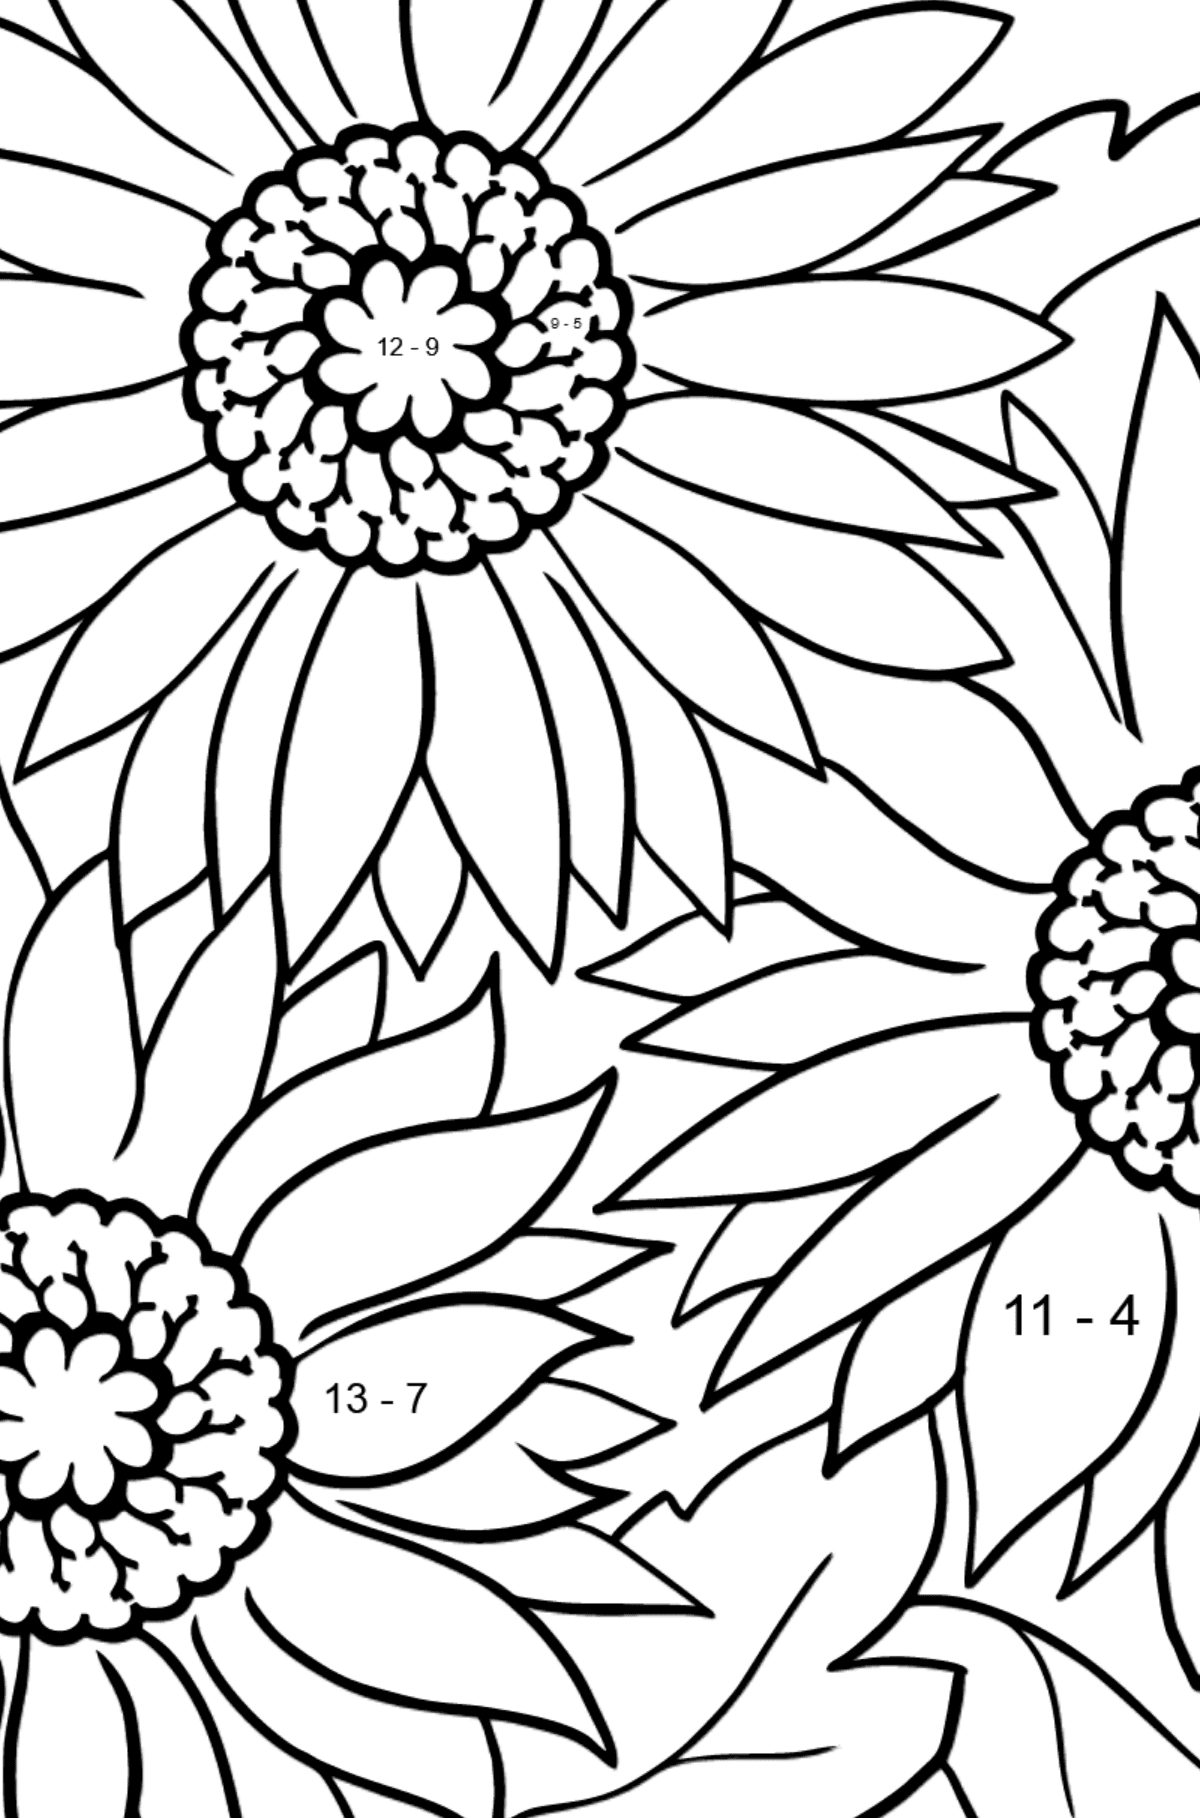 Coloring Flowers for the Youngest Children - Pink Gerbera - Math Coloring - Subtraction for Kids